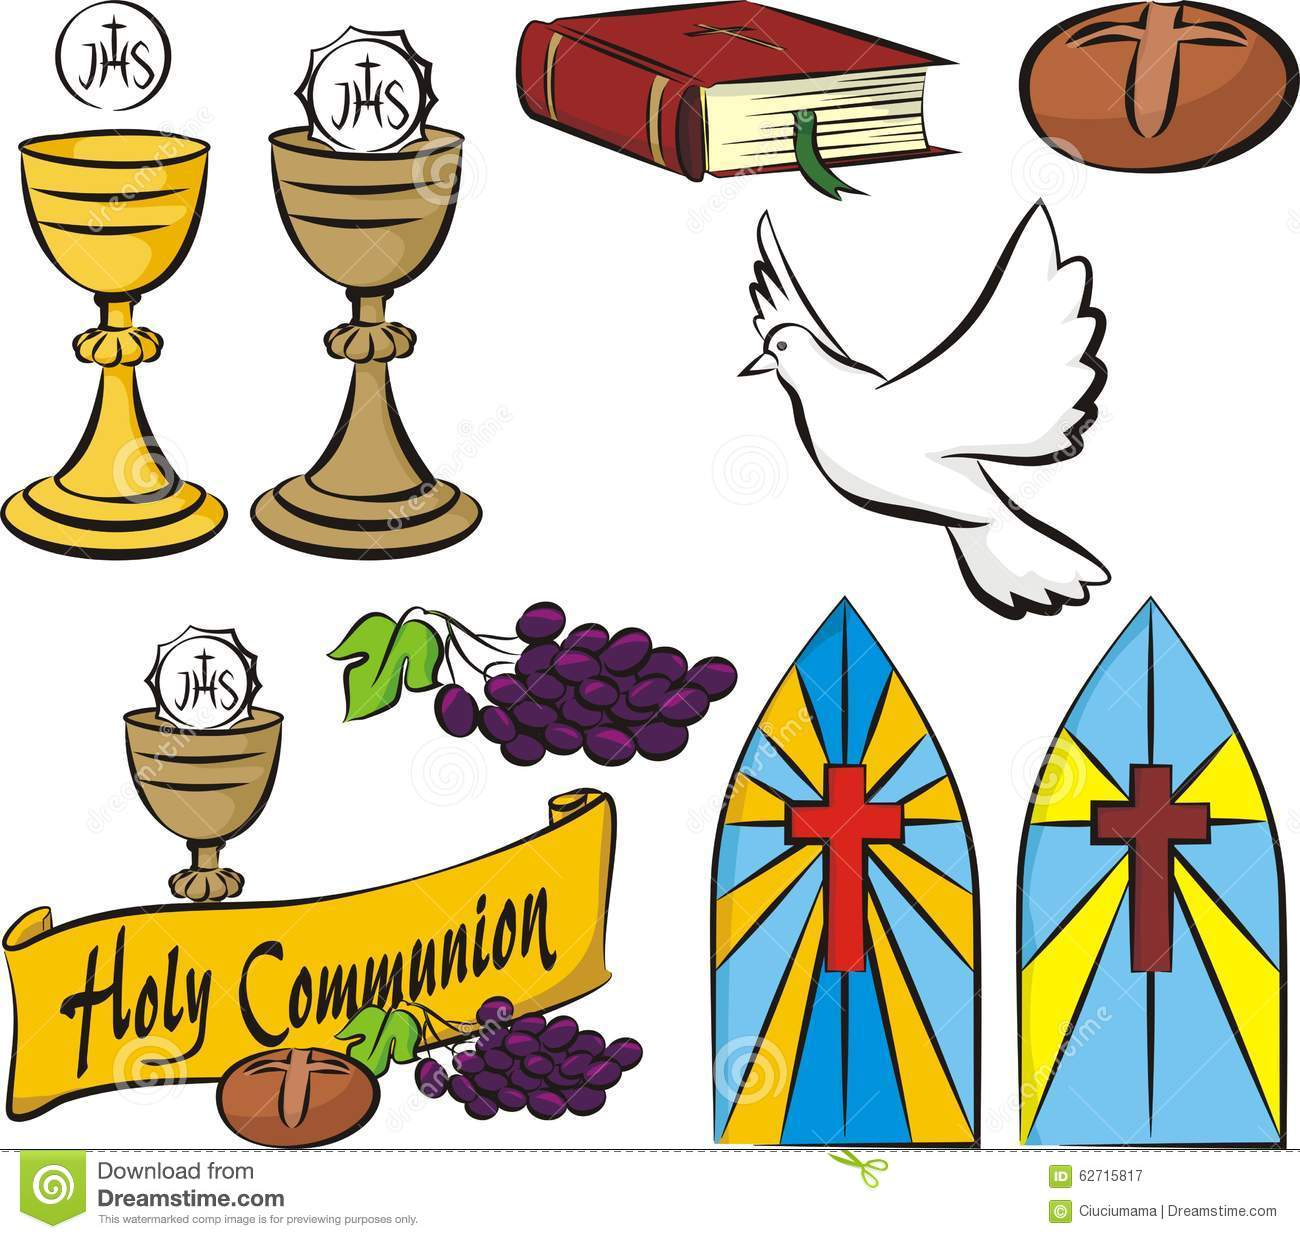 Holy Communion  Vector Symbols Stock Vector. Desktop Support Software Ats Software Reviews. Definition Of A Smart Phone Sim Cards In Uk. Kansas Board Of Cosmetology D C Packaging. Central Georgia Technical College. Incorporating Your Business Renting A Place. Los Gatos Police Department Words With Audi. Wellness Program Administrator. What Is The Best Non Prescription Erectile Dysfunction